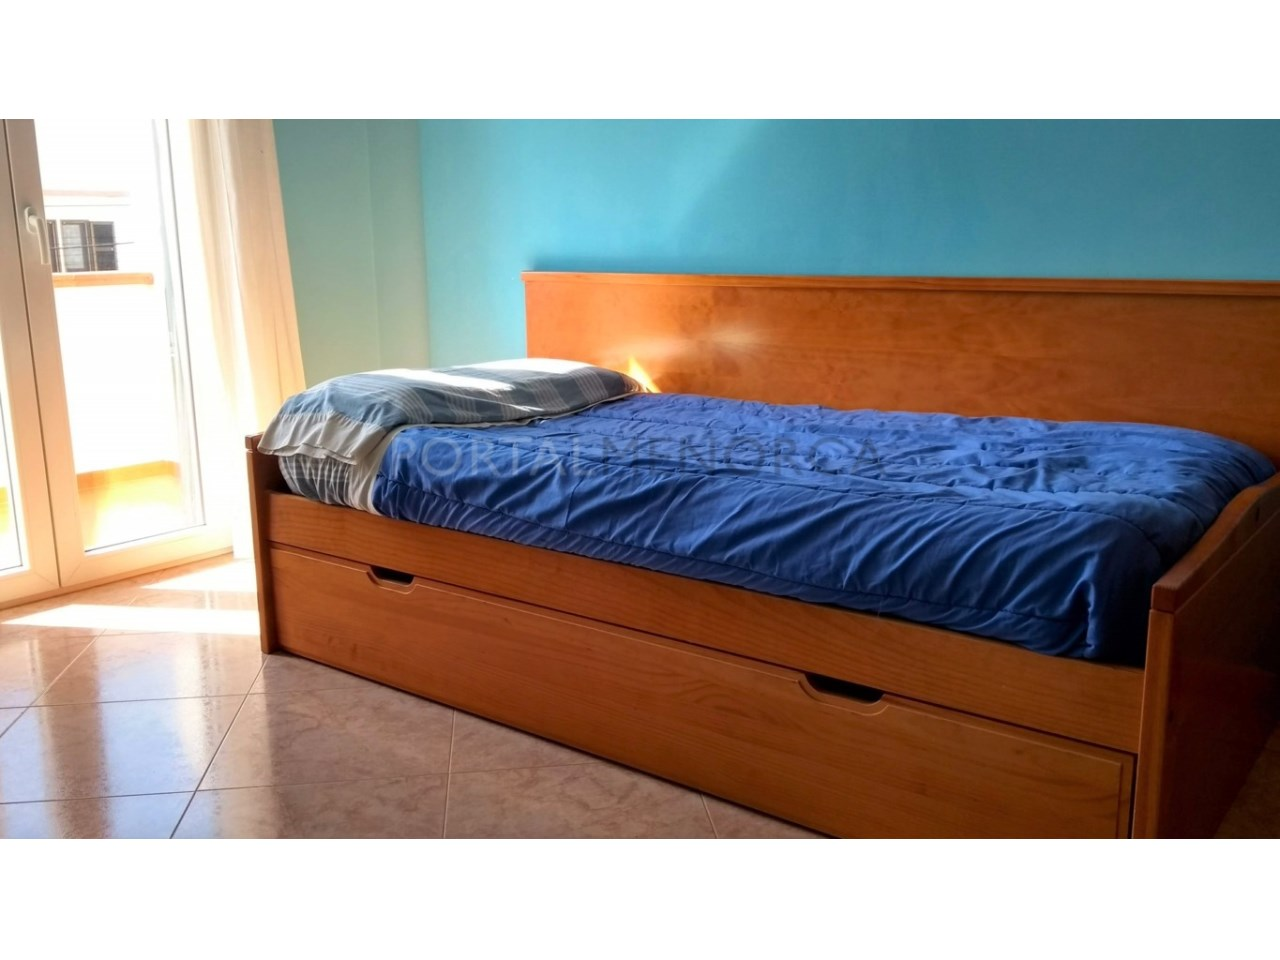 Charming villa with garage in Son Oleo for sale-Bedroom